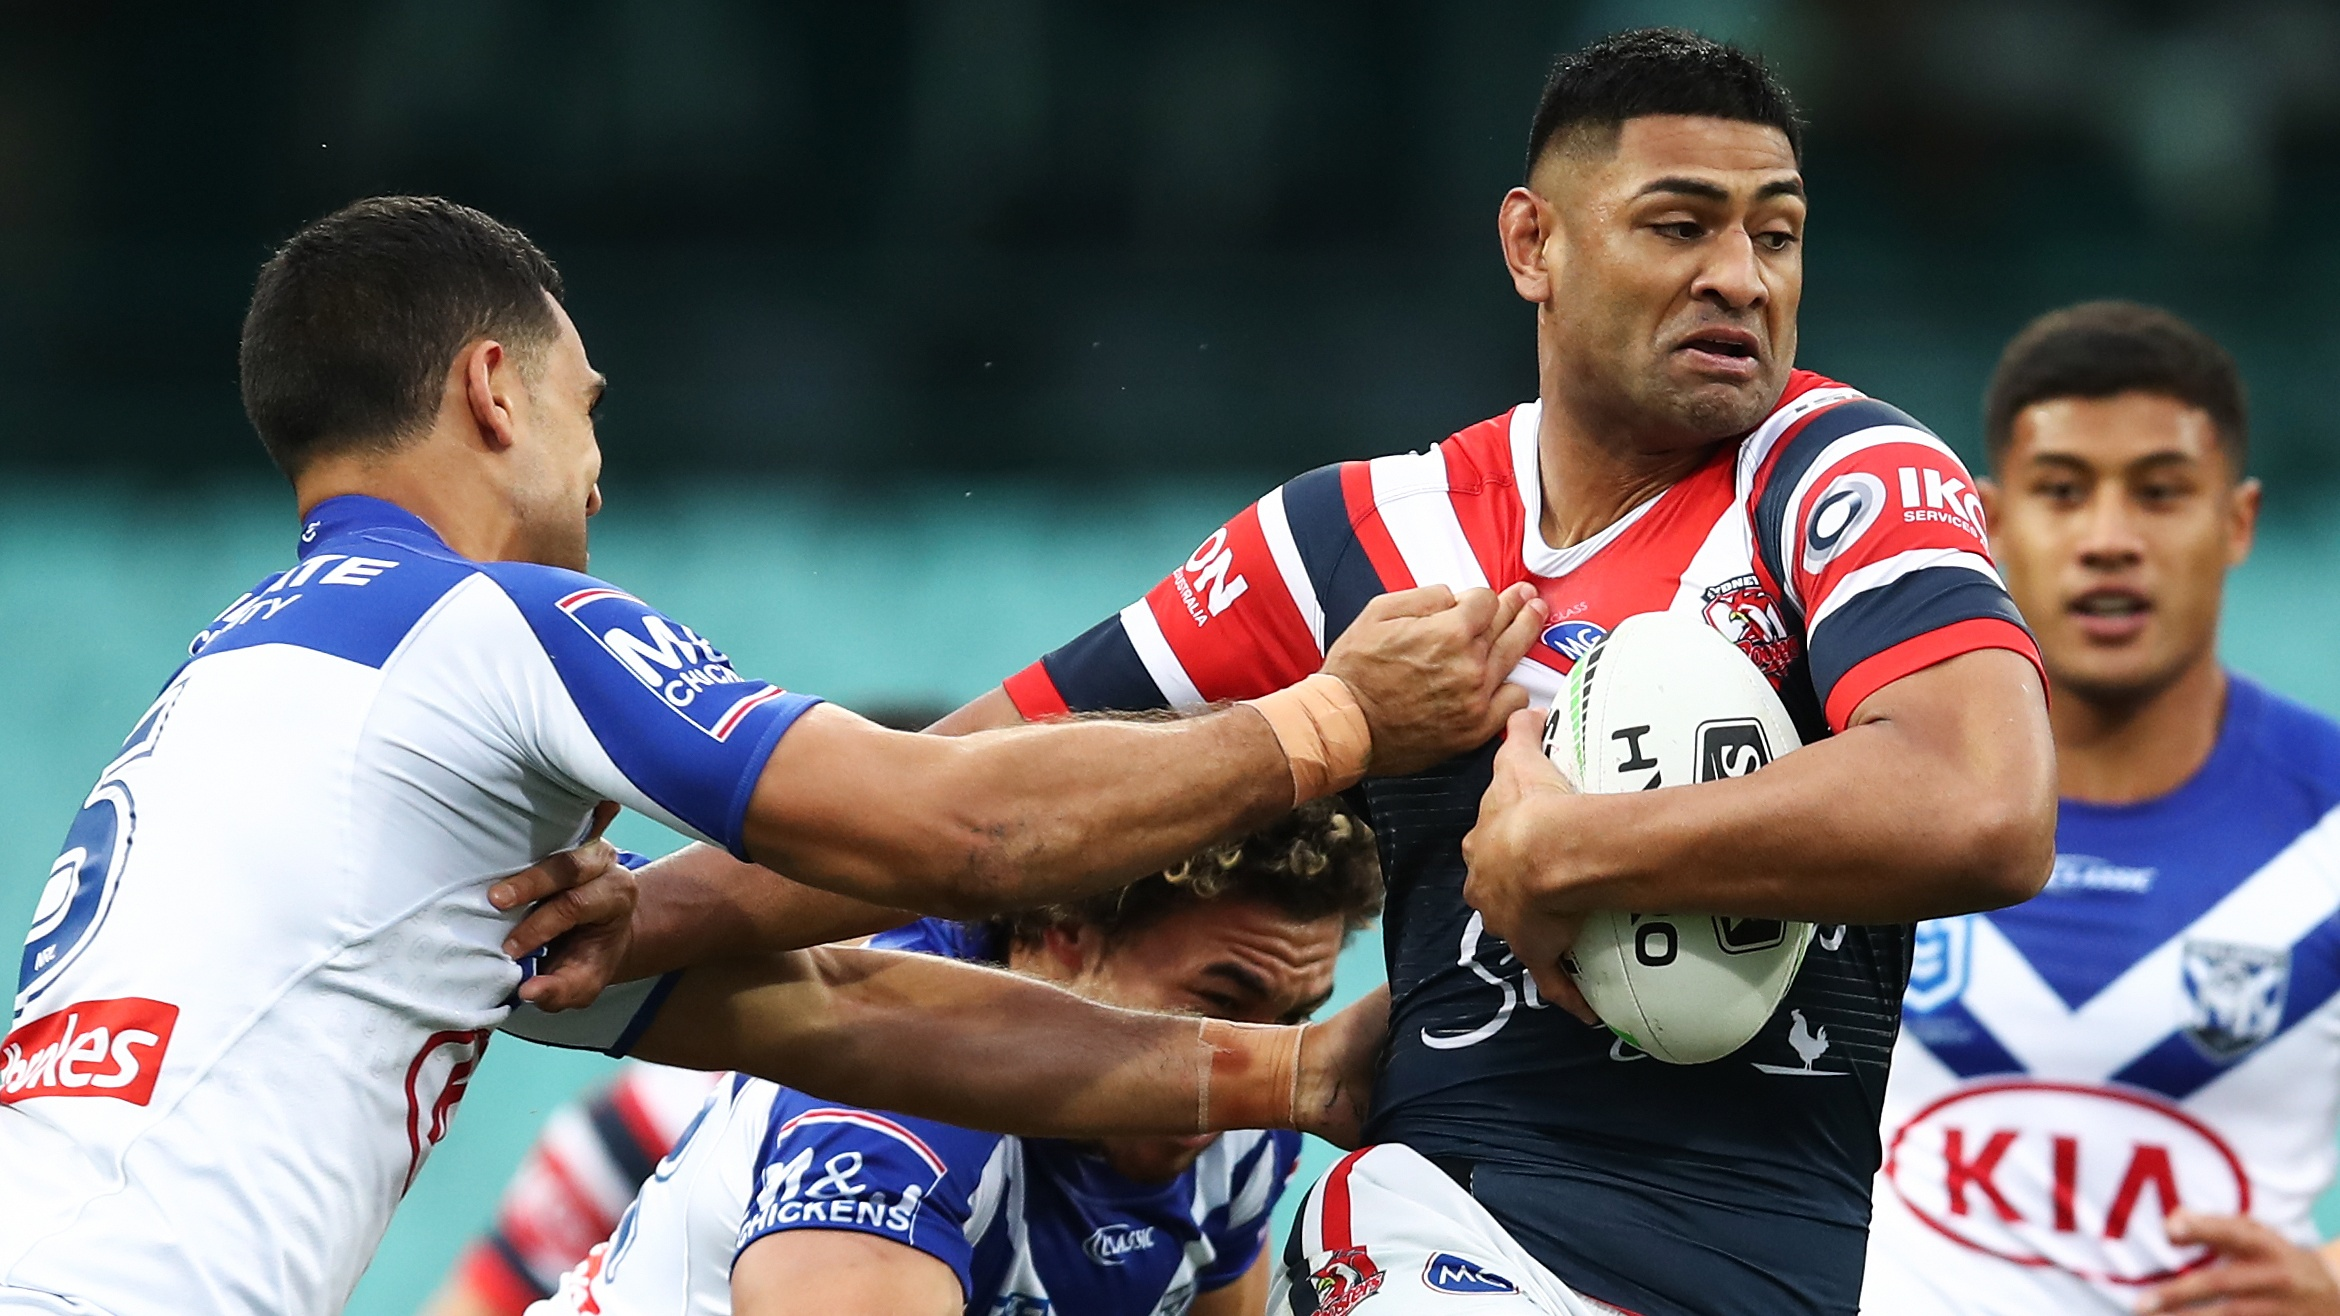 NRL Highlights: Roosters v Bulldogs - Round 14